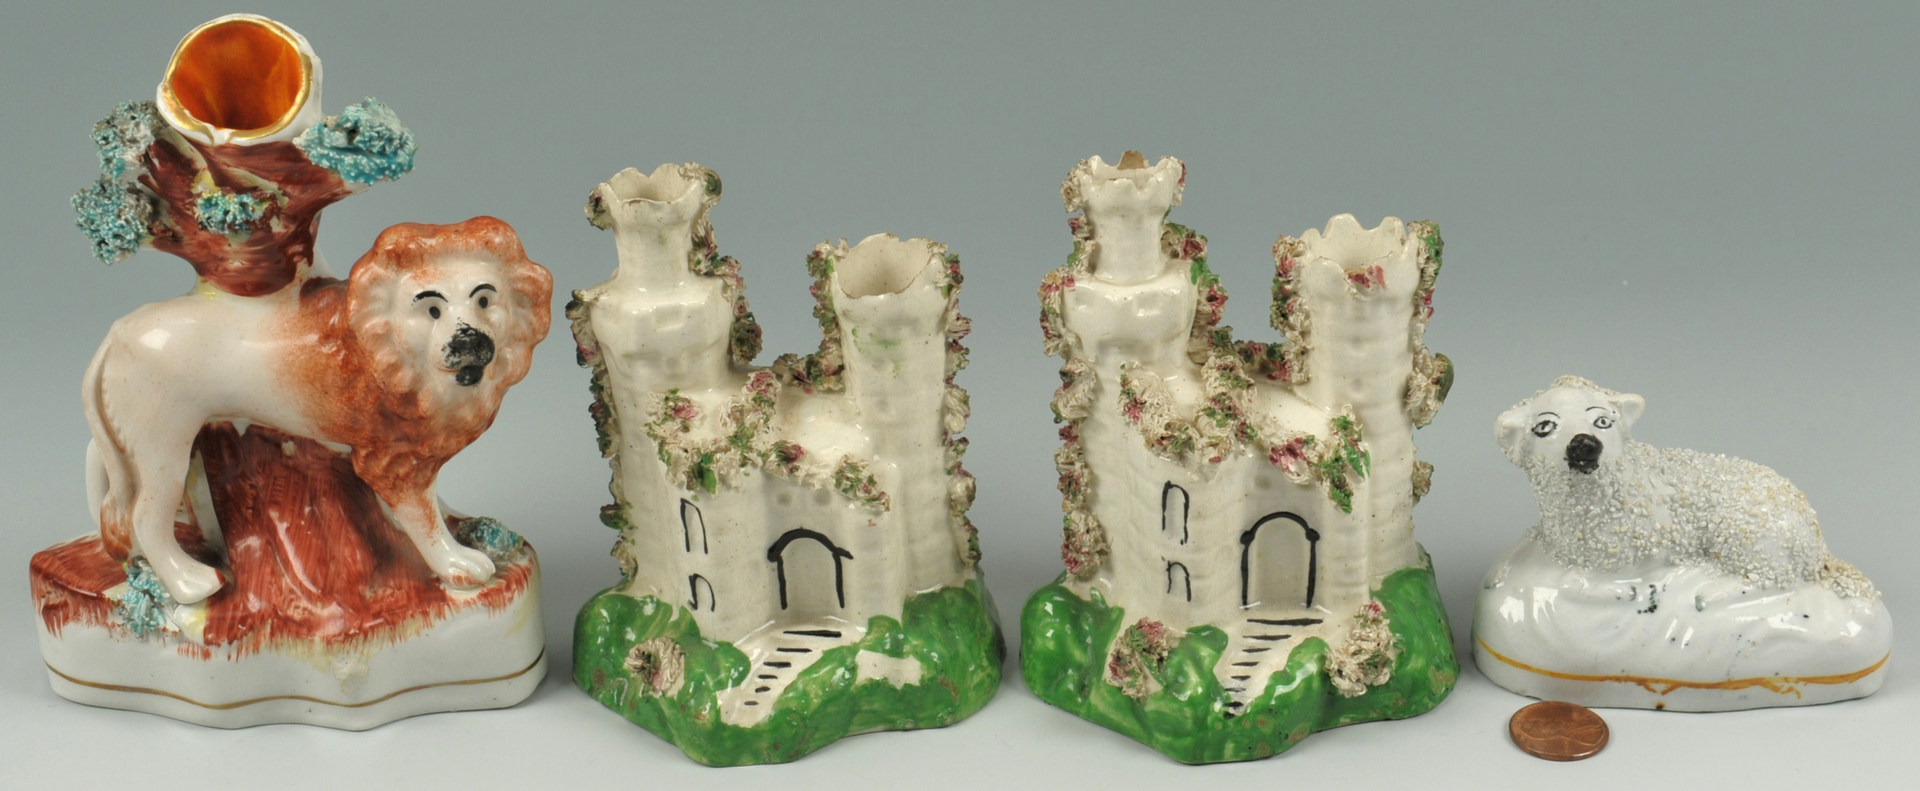 Lot 253: 4 pieces of 19th Century Staffordshire Pottery